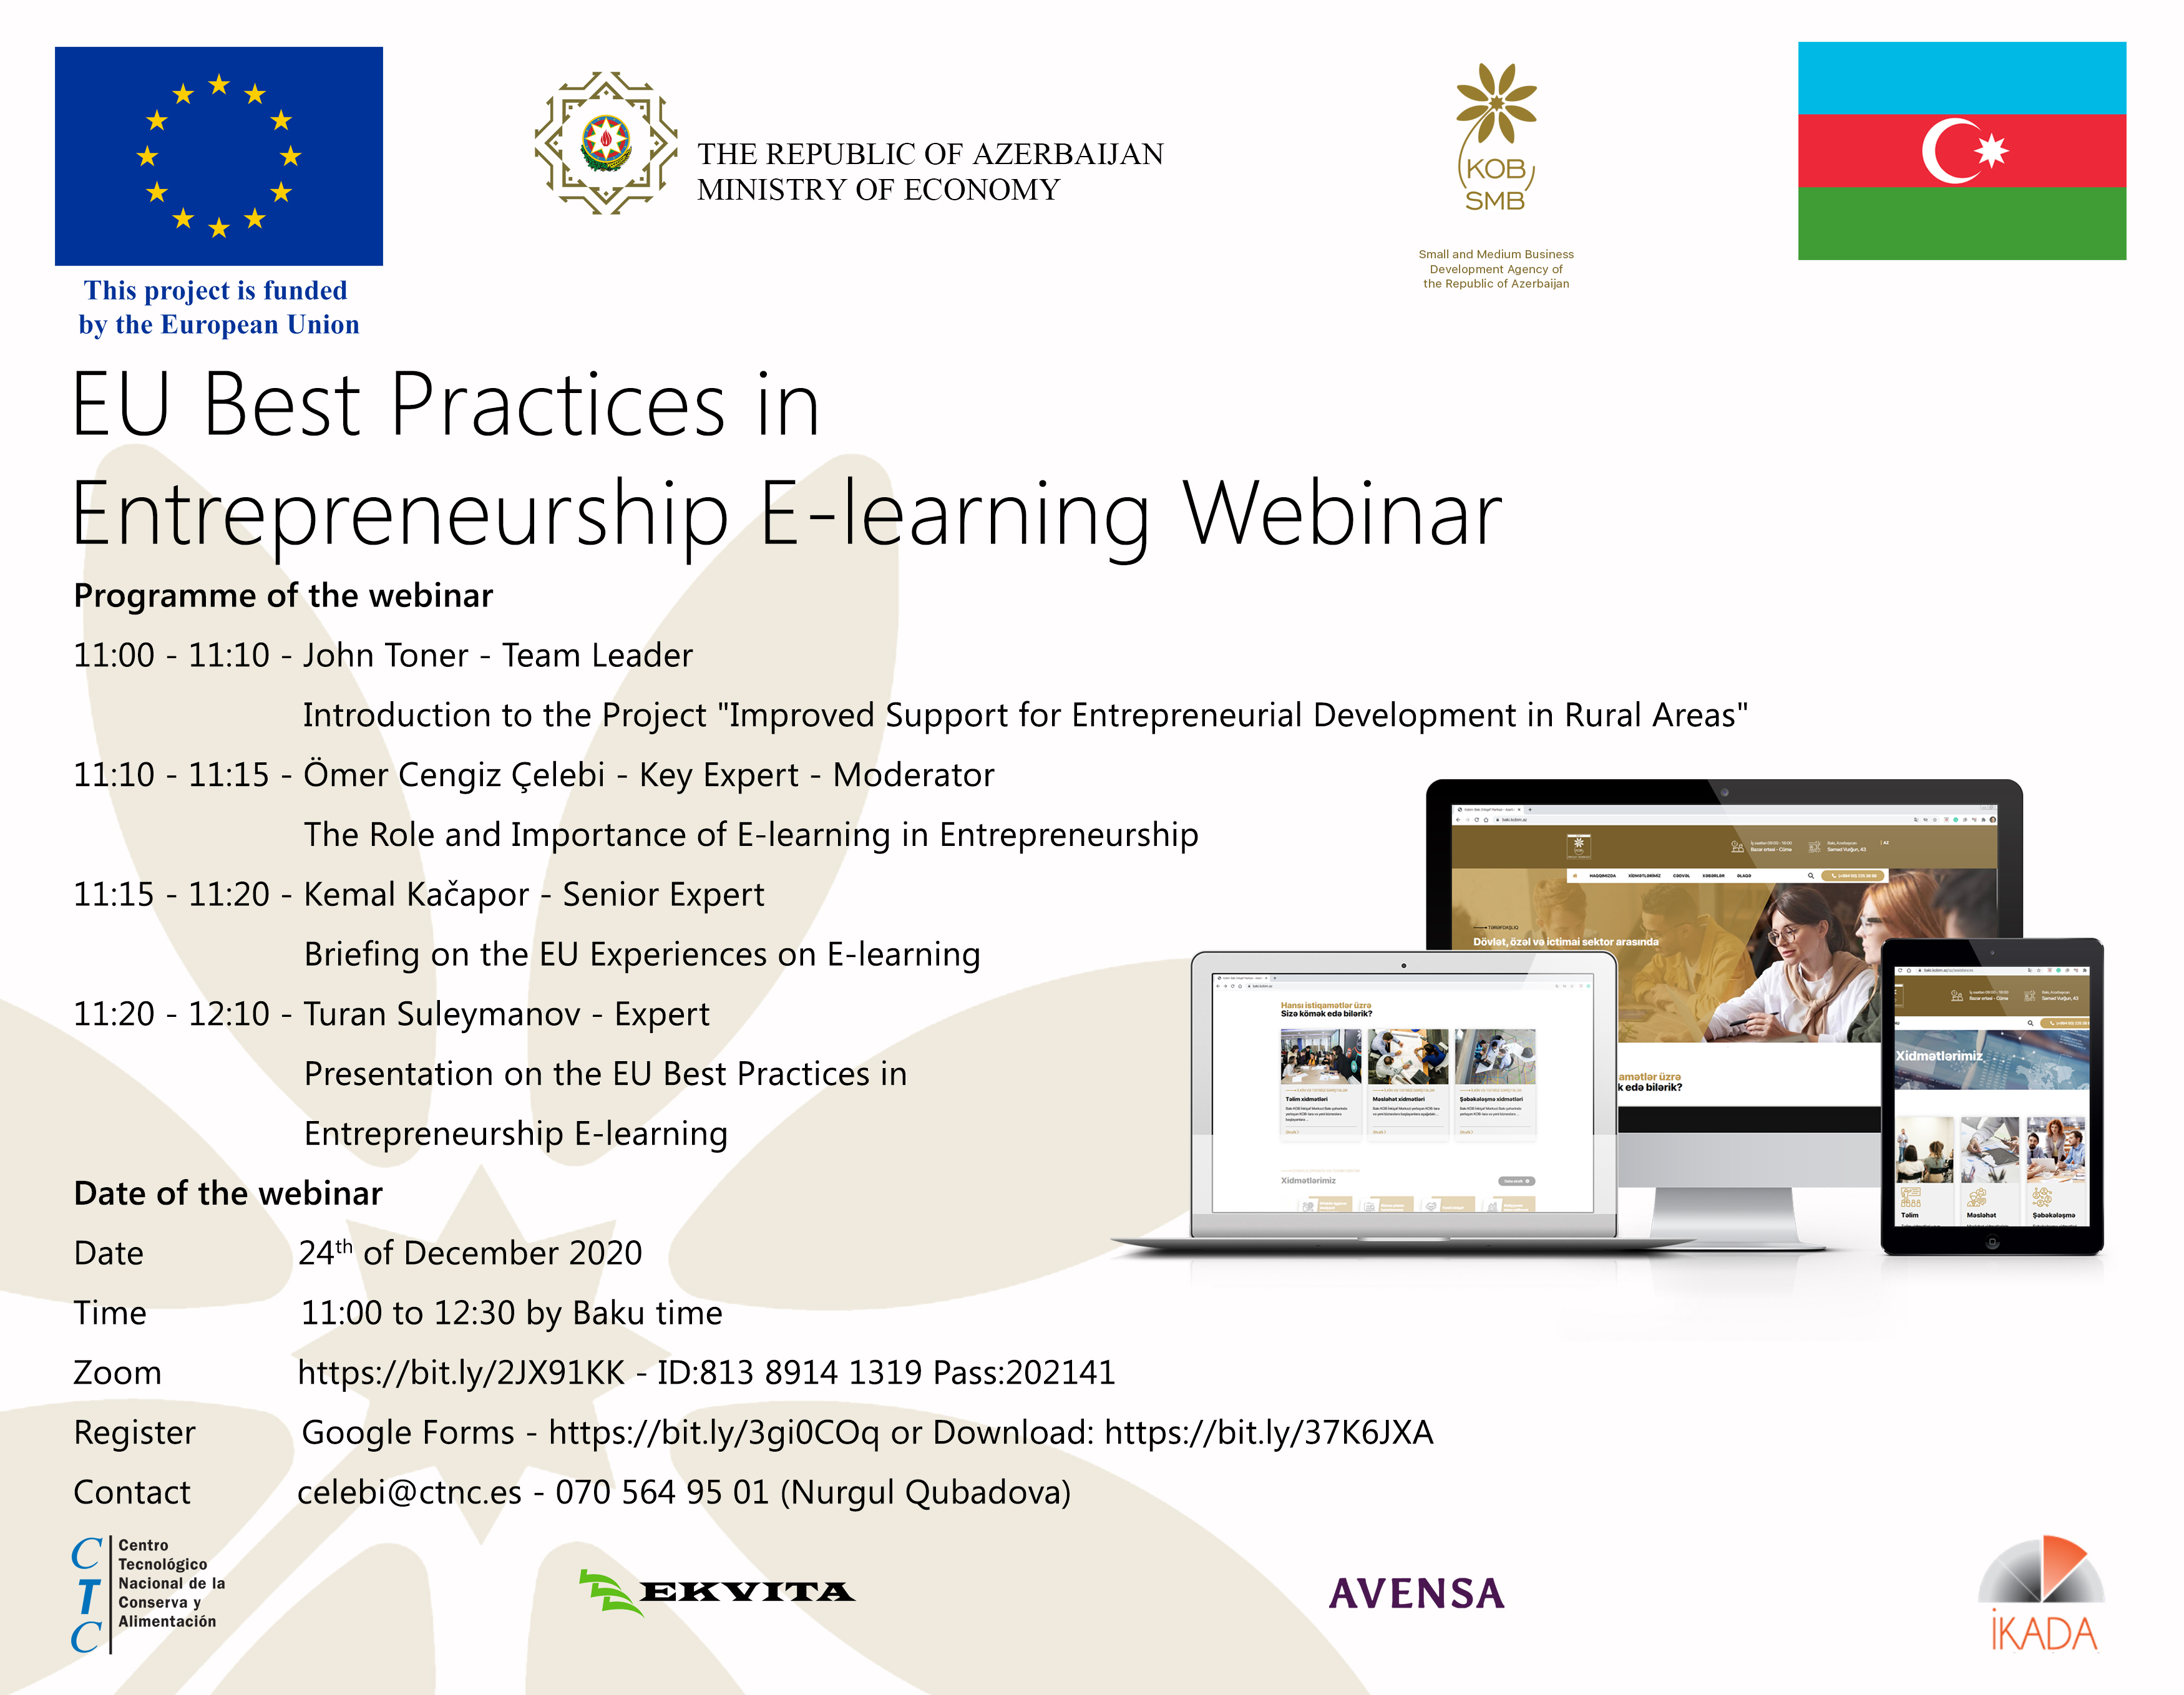 EU Best Practices in Entrepreneurship E-learning